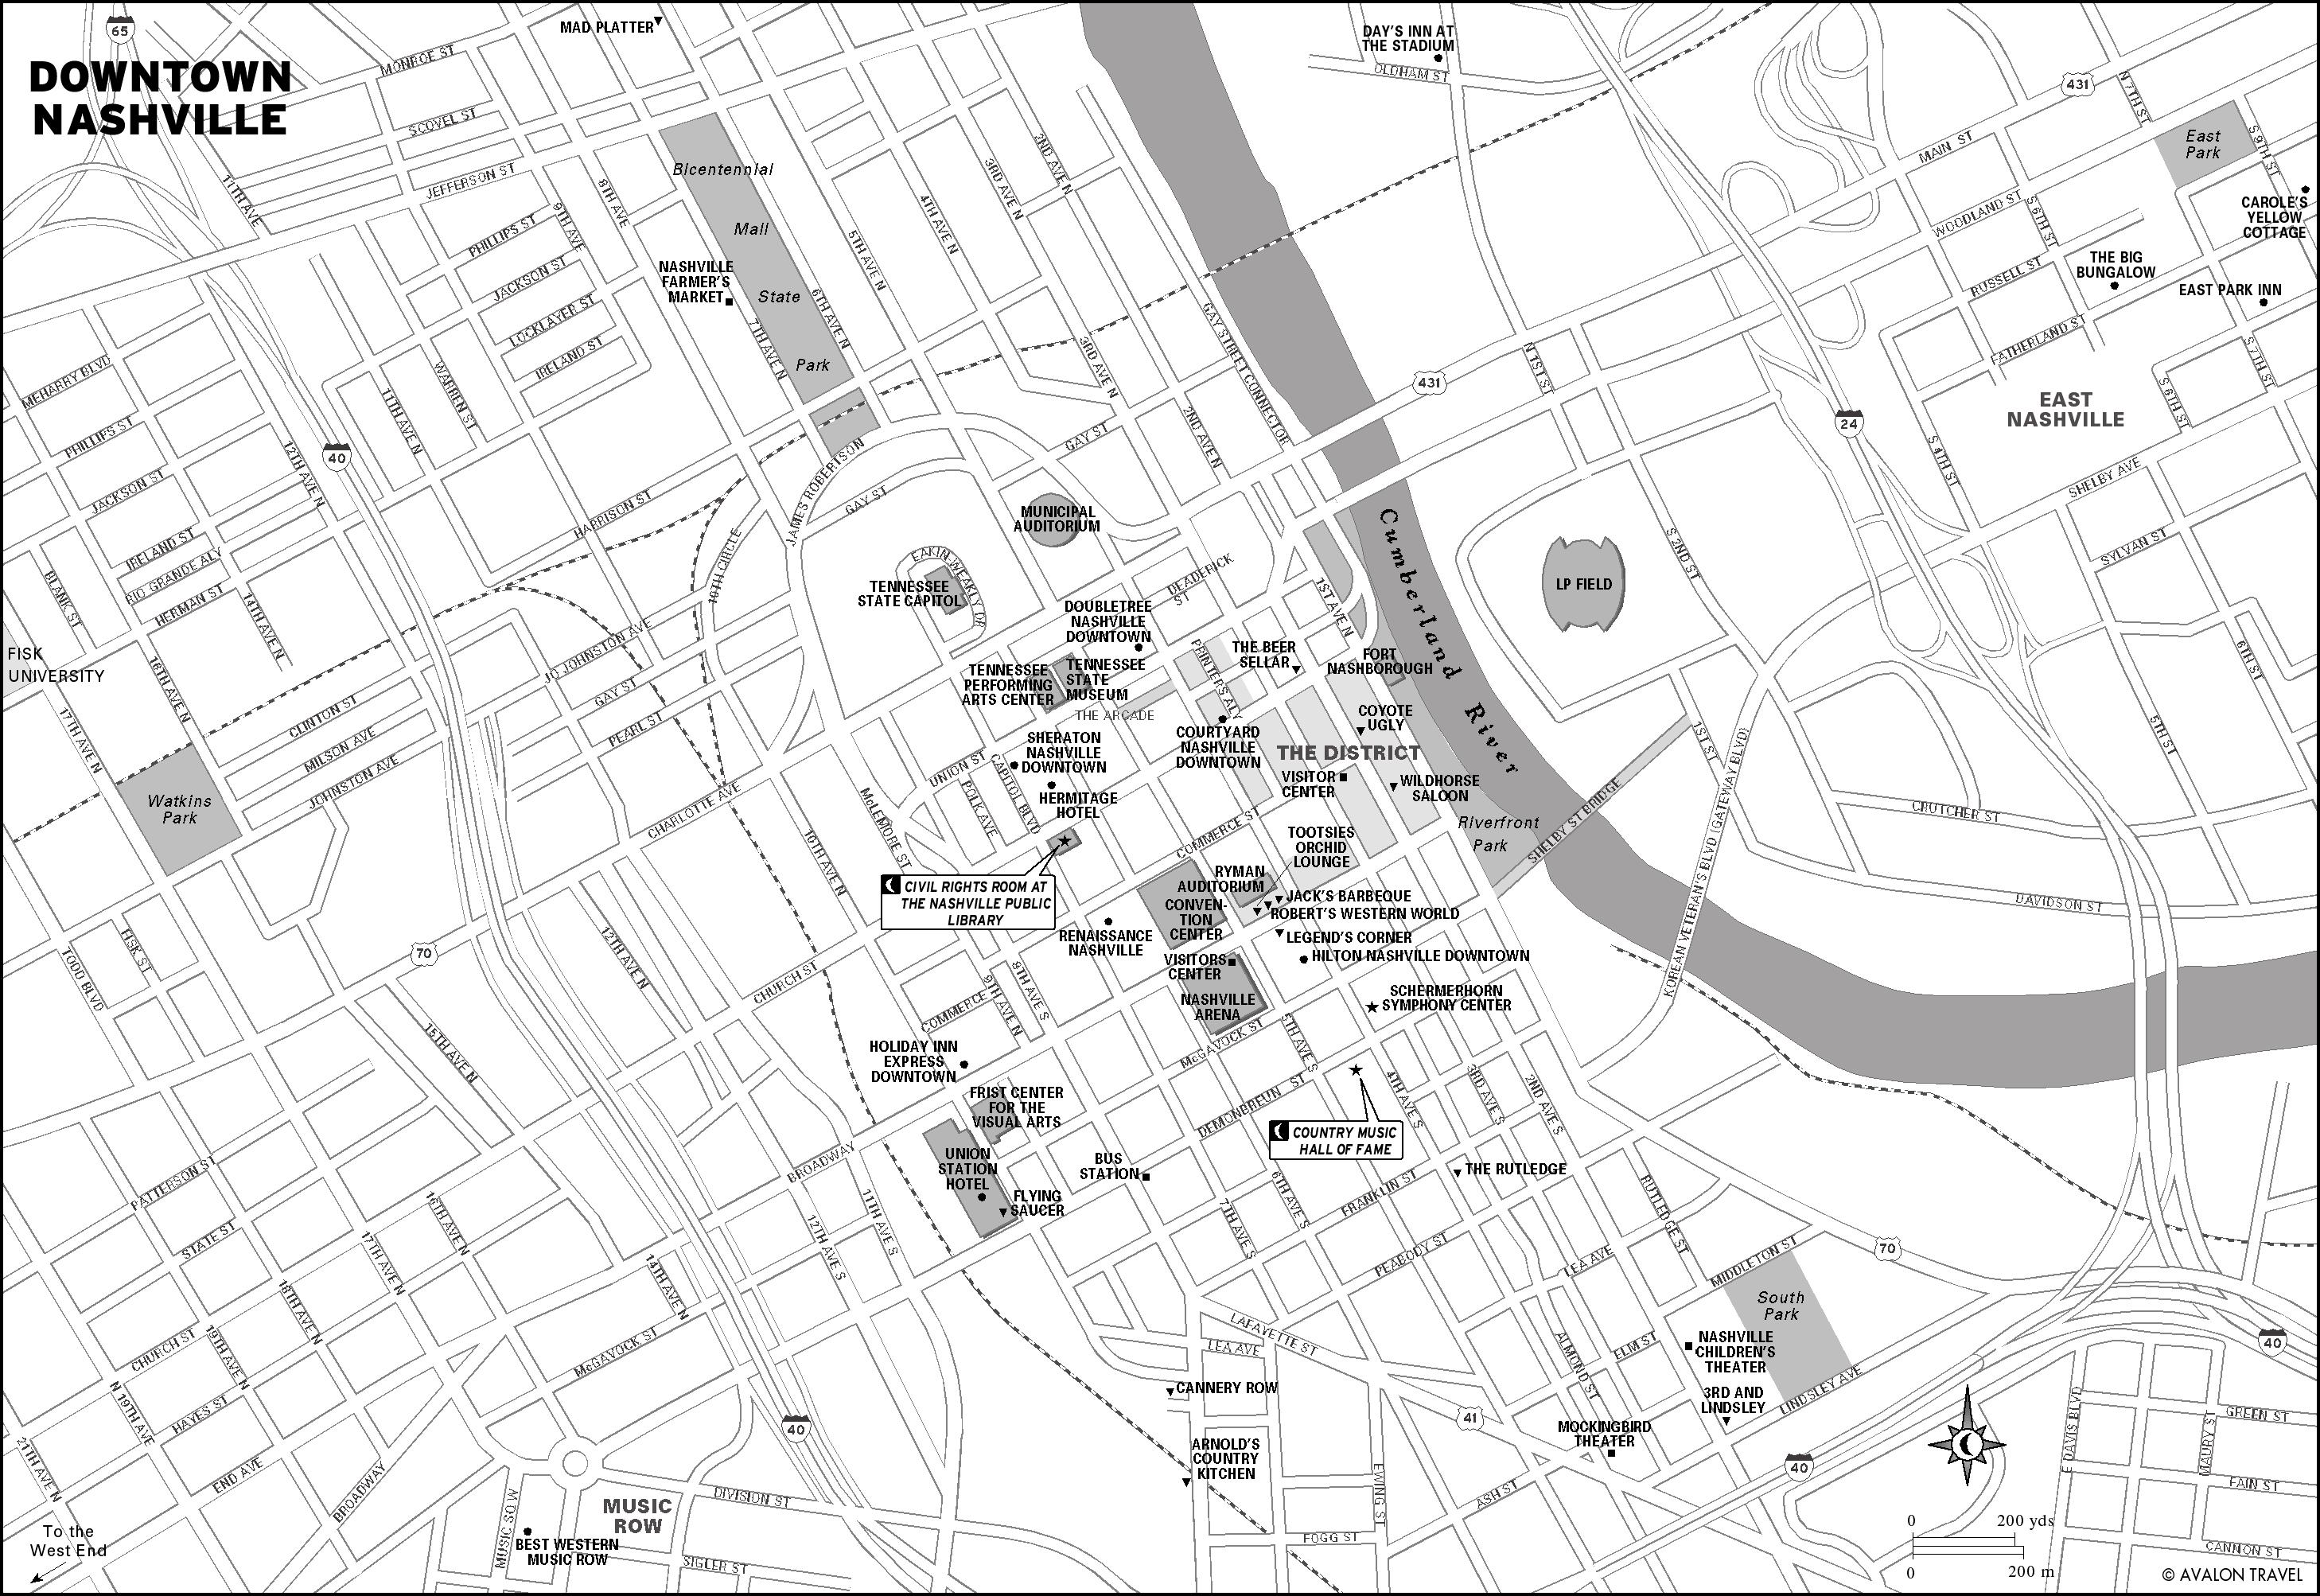 Downtown Nashville TN Tourist Map Nashville TN mappery – Tourist Map Of Nashville